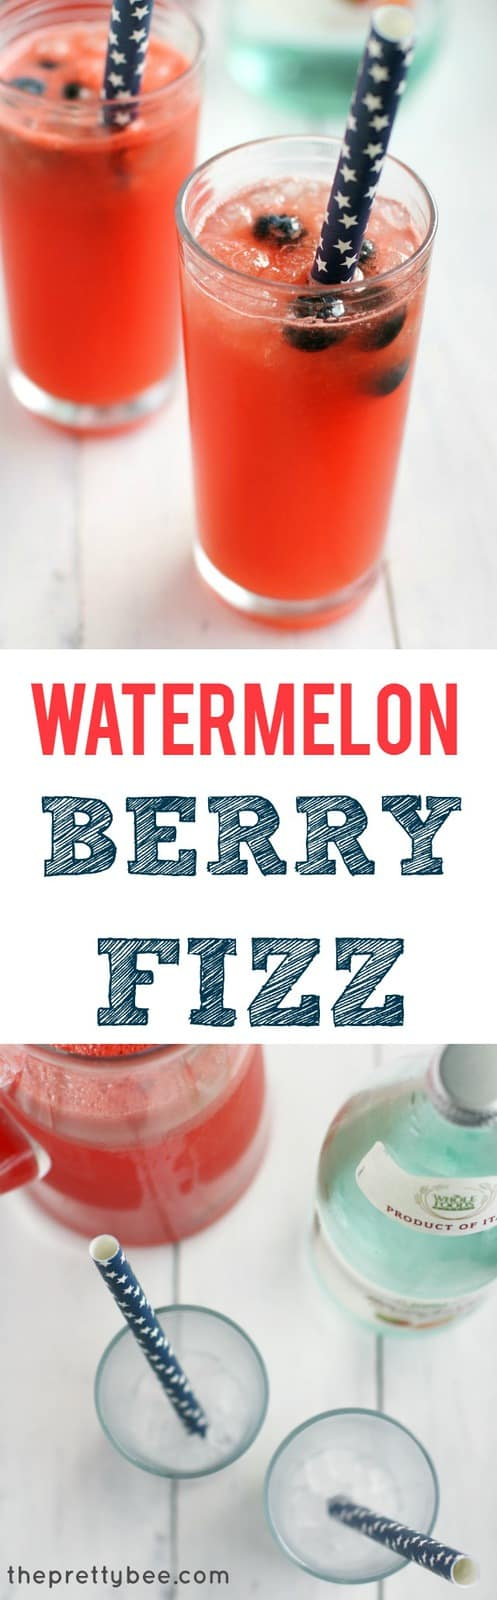 A delicious way to cool off this summer - watermelon berry fizz is a light and refreshing drink that everyone loves!